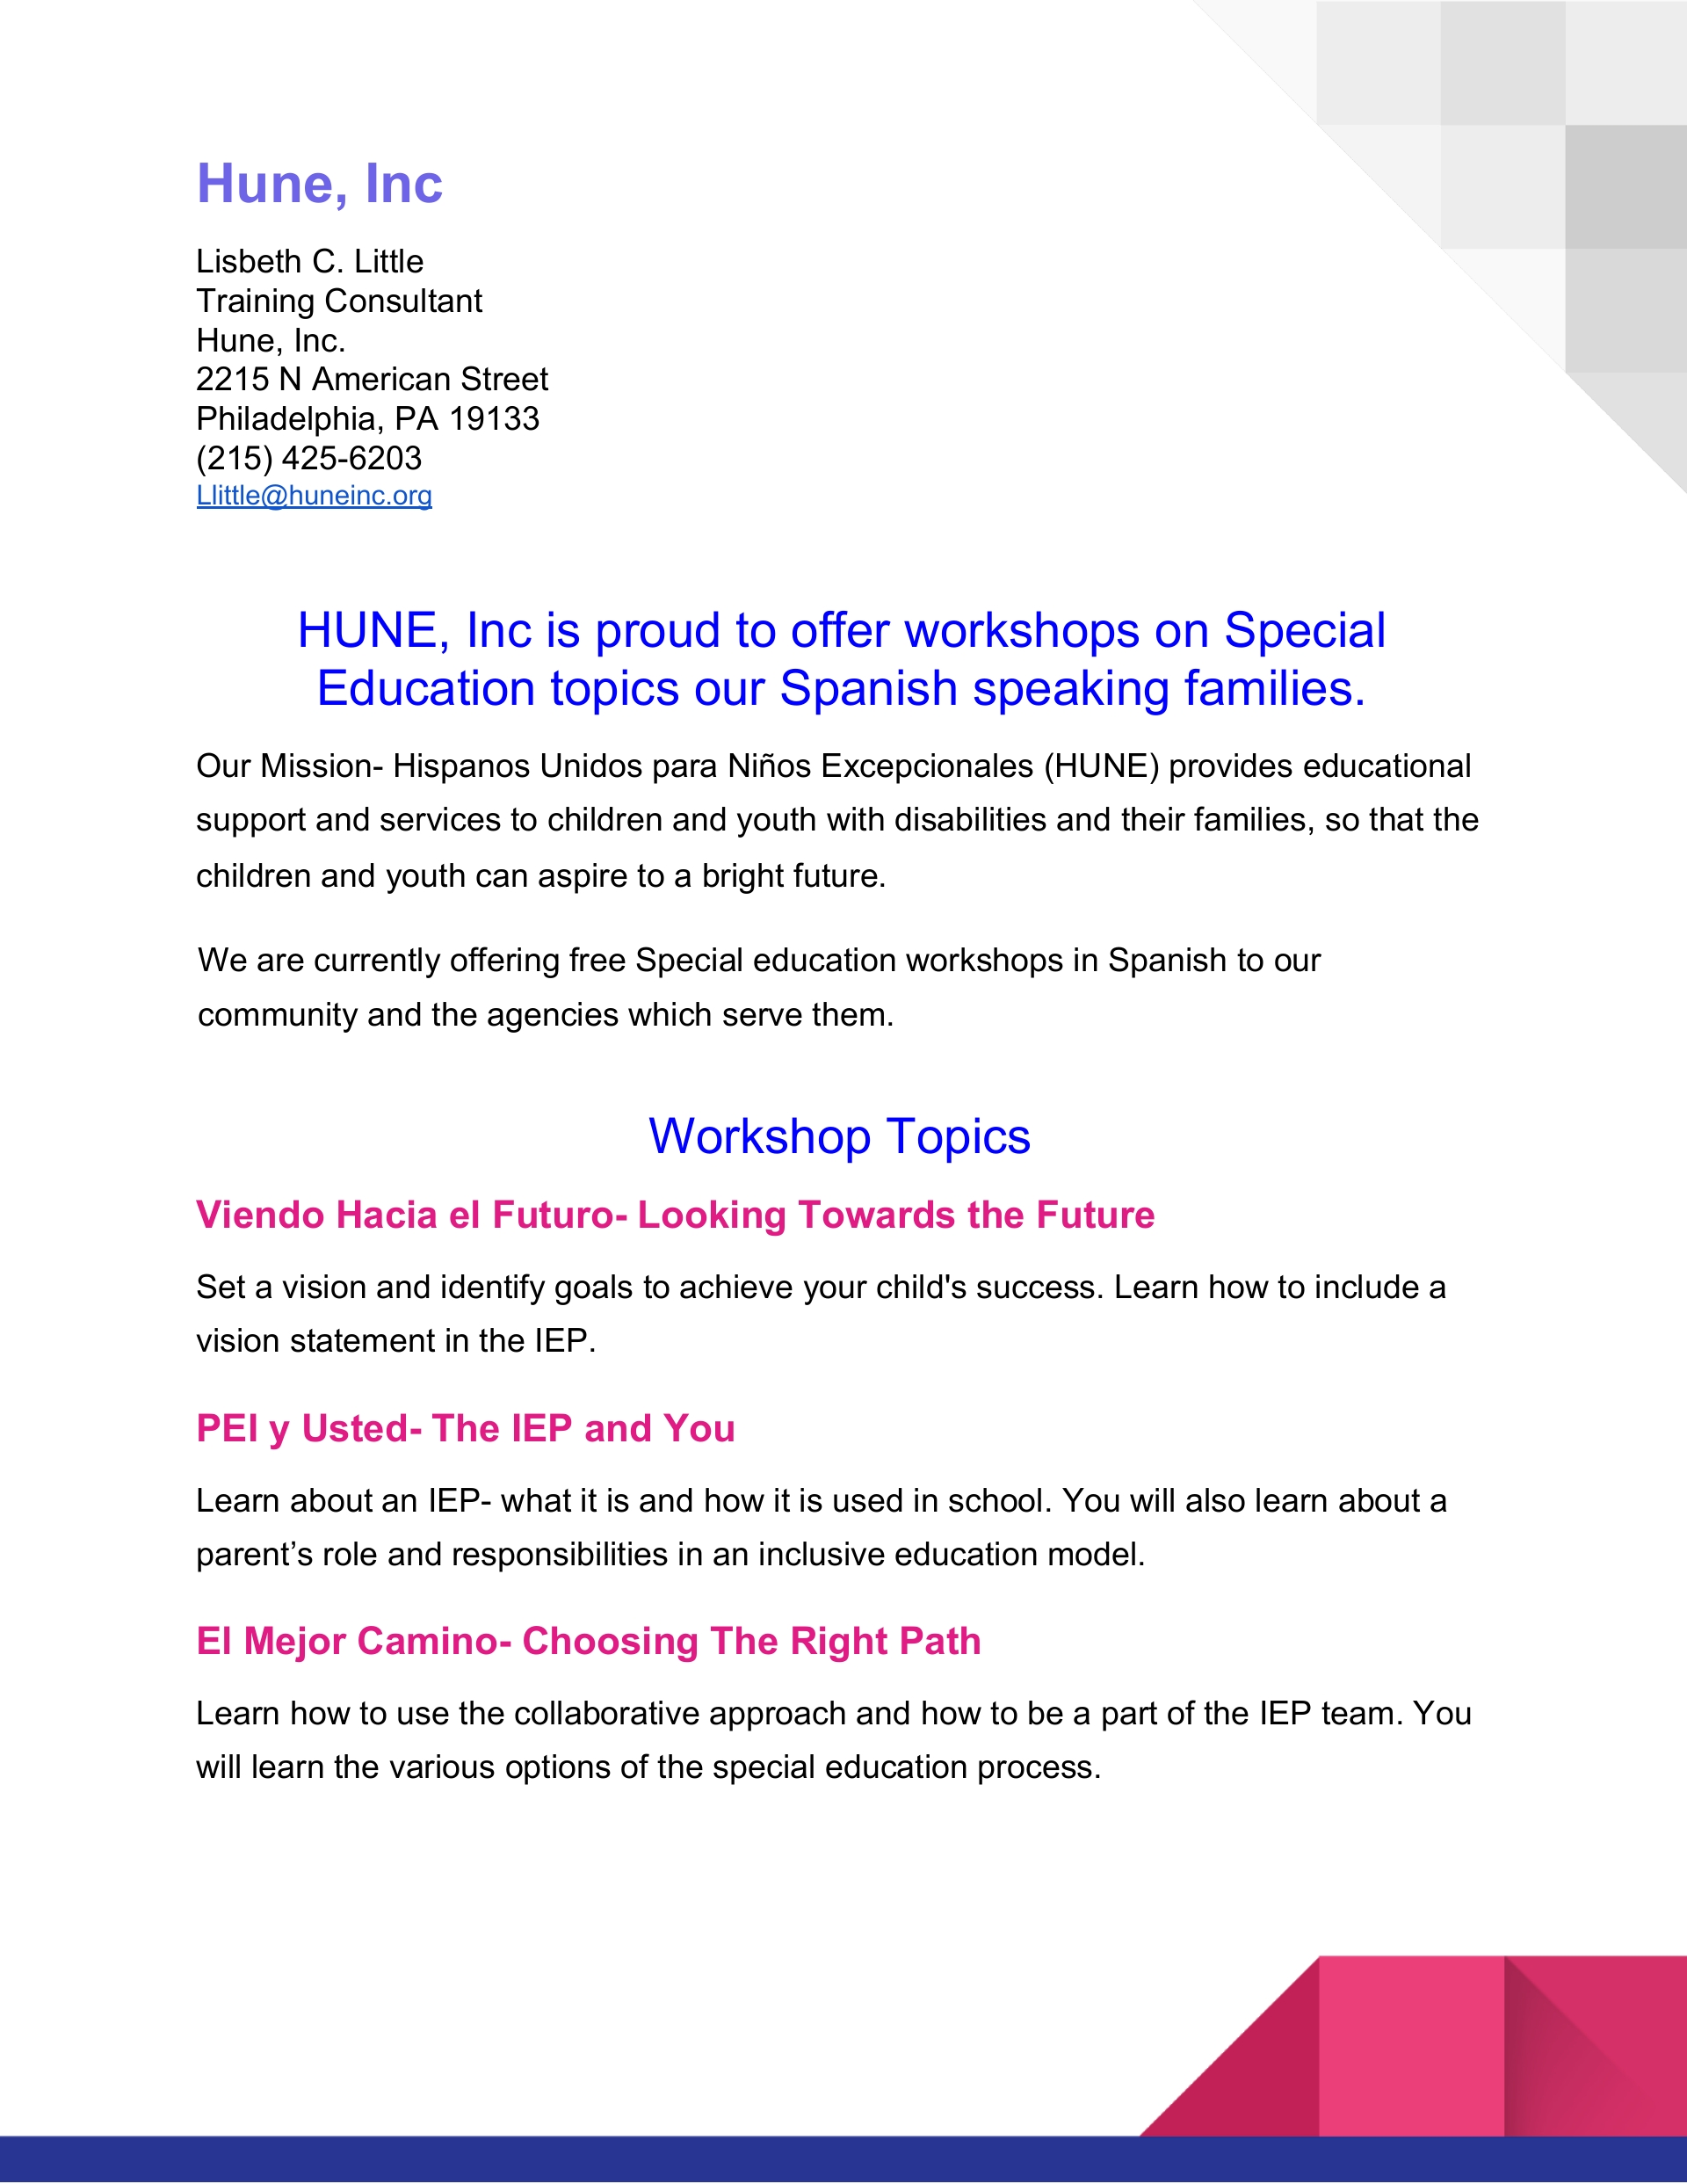 SPECIAL EDUCATION WORKSHOPS IN SPANISH